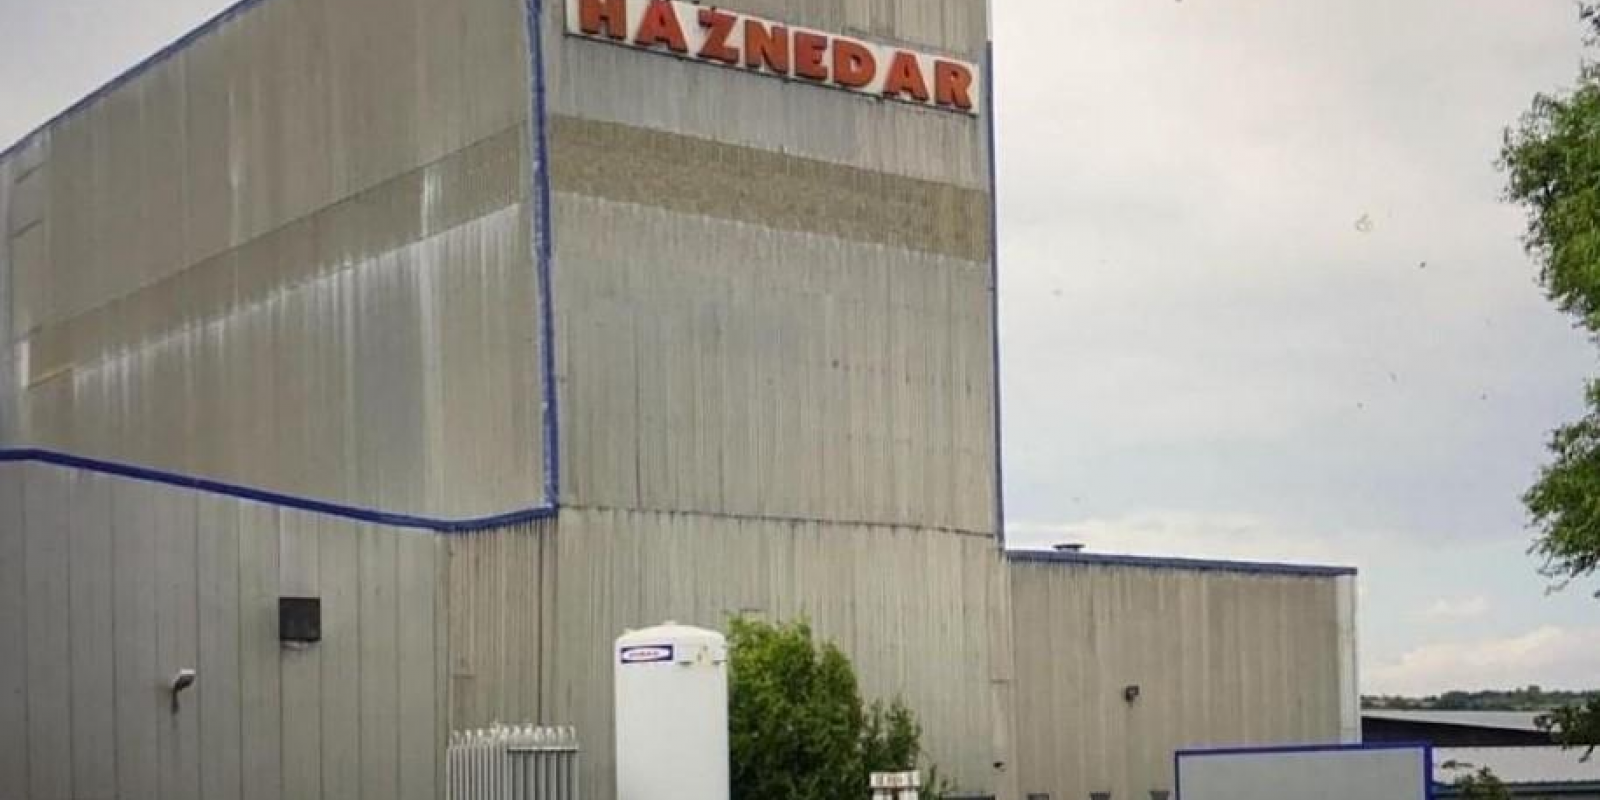 Leadership position in refractories: Haznedar acquisition